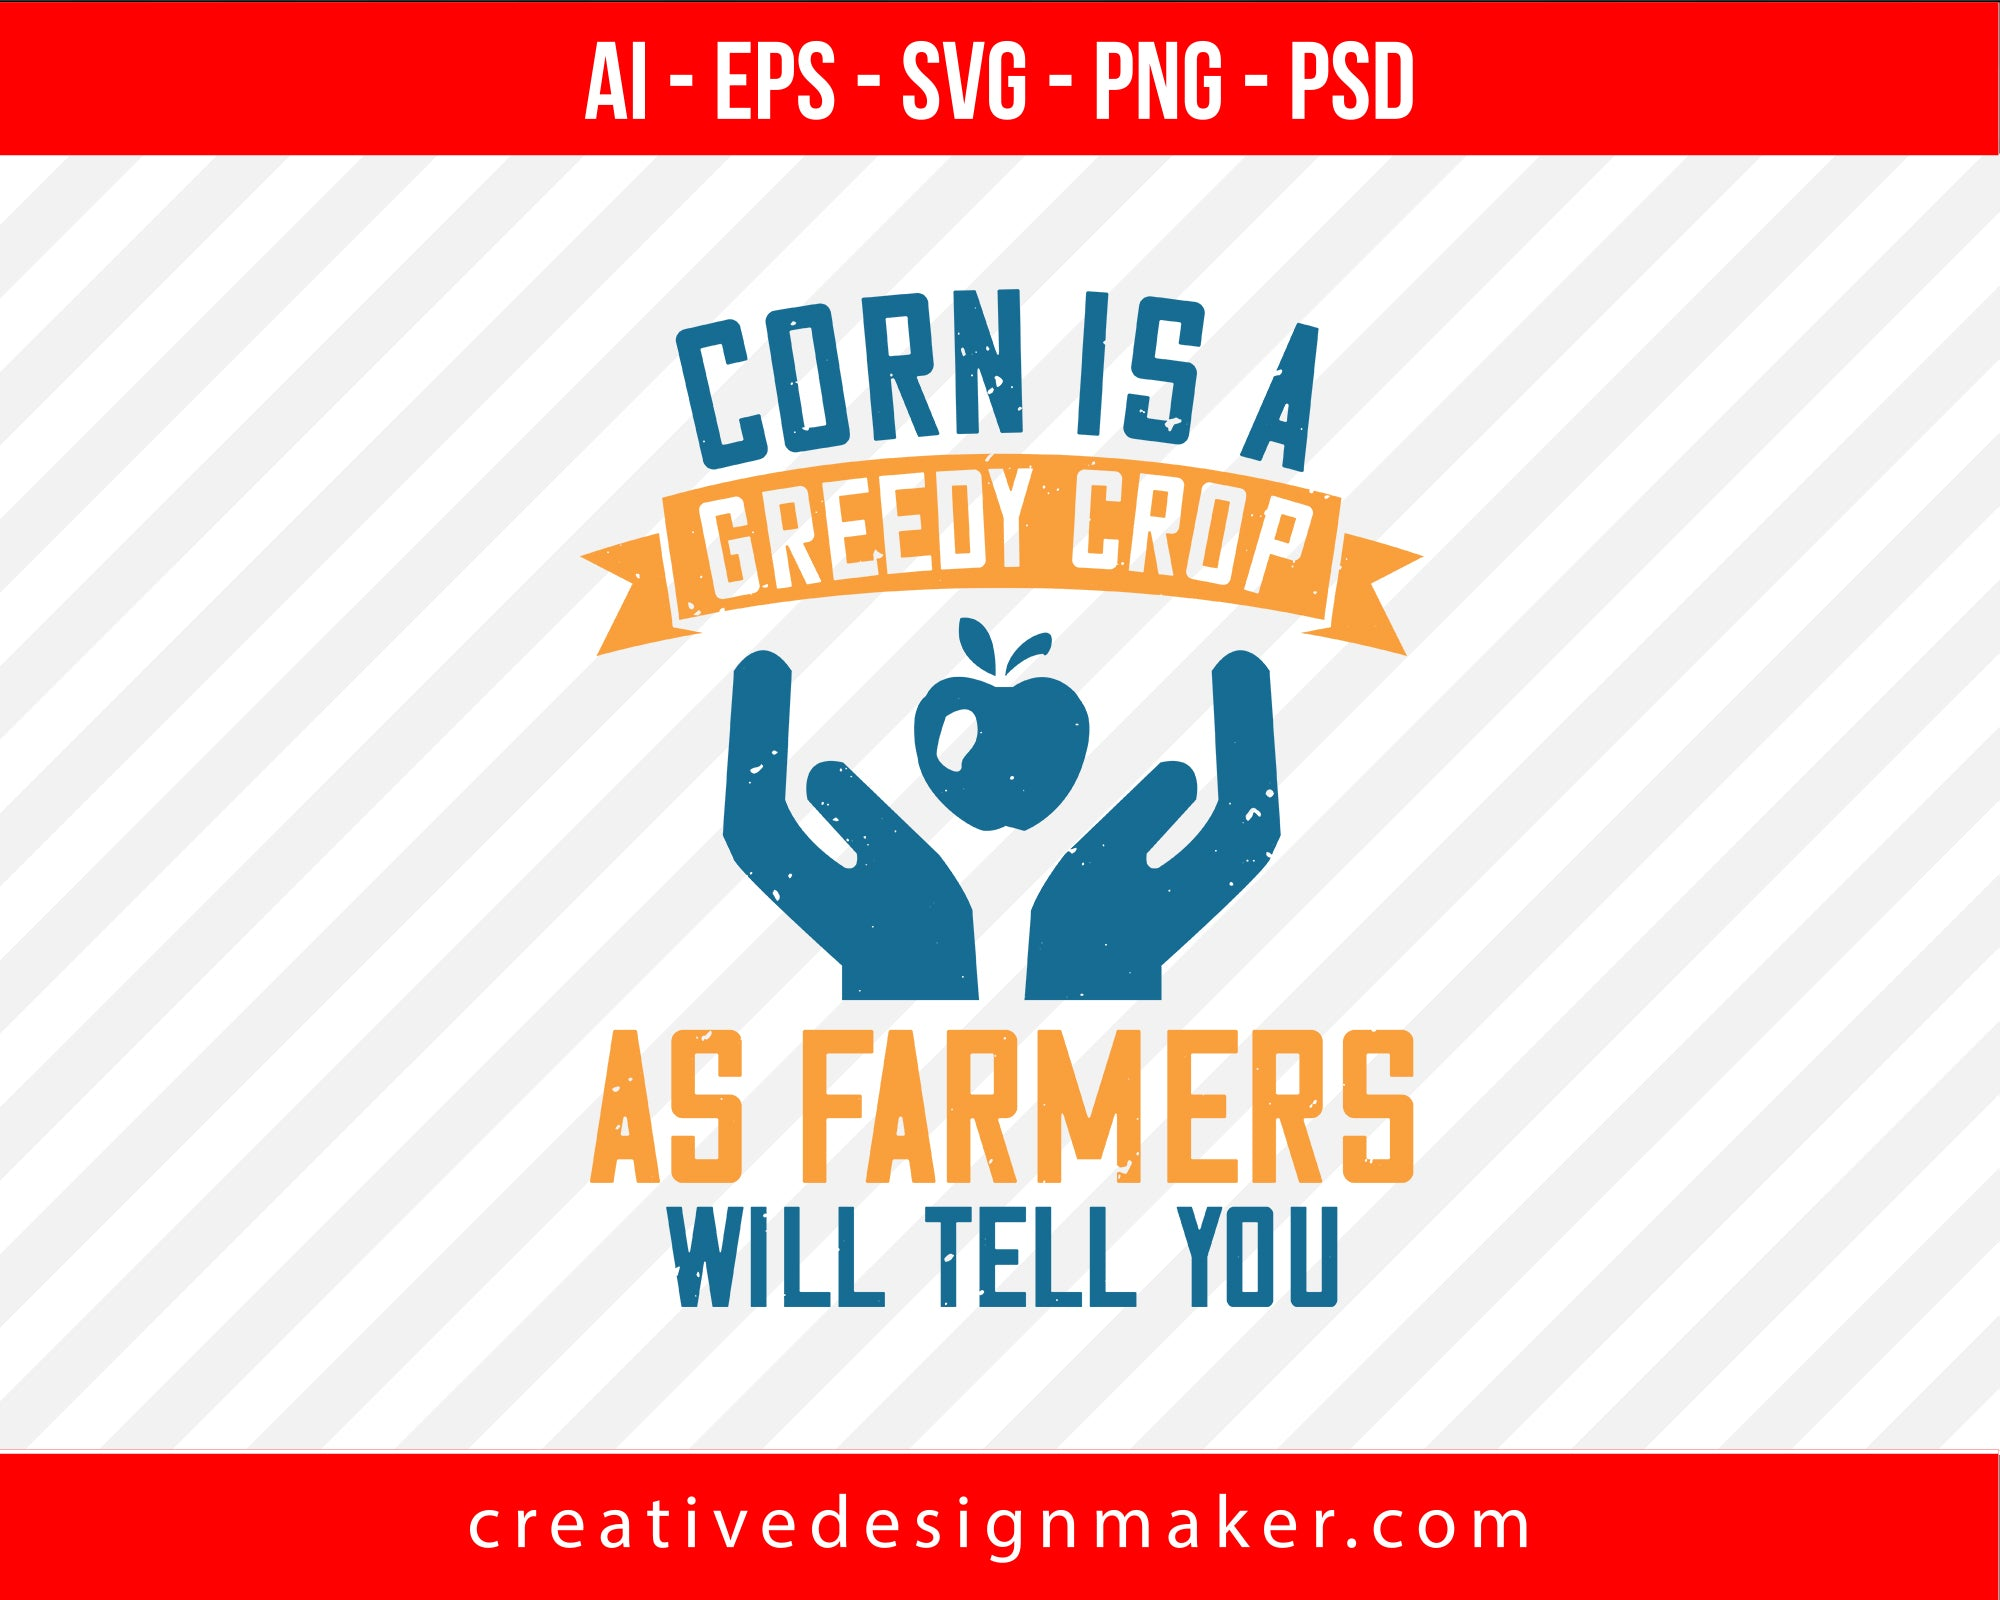 Corn Is A Greedy Crop, As Farmers Will Tell You World Health Print Ready Editable T-Shirt SVG Design!